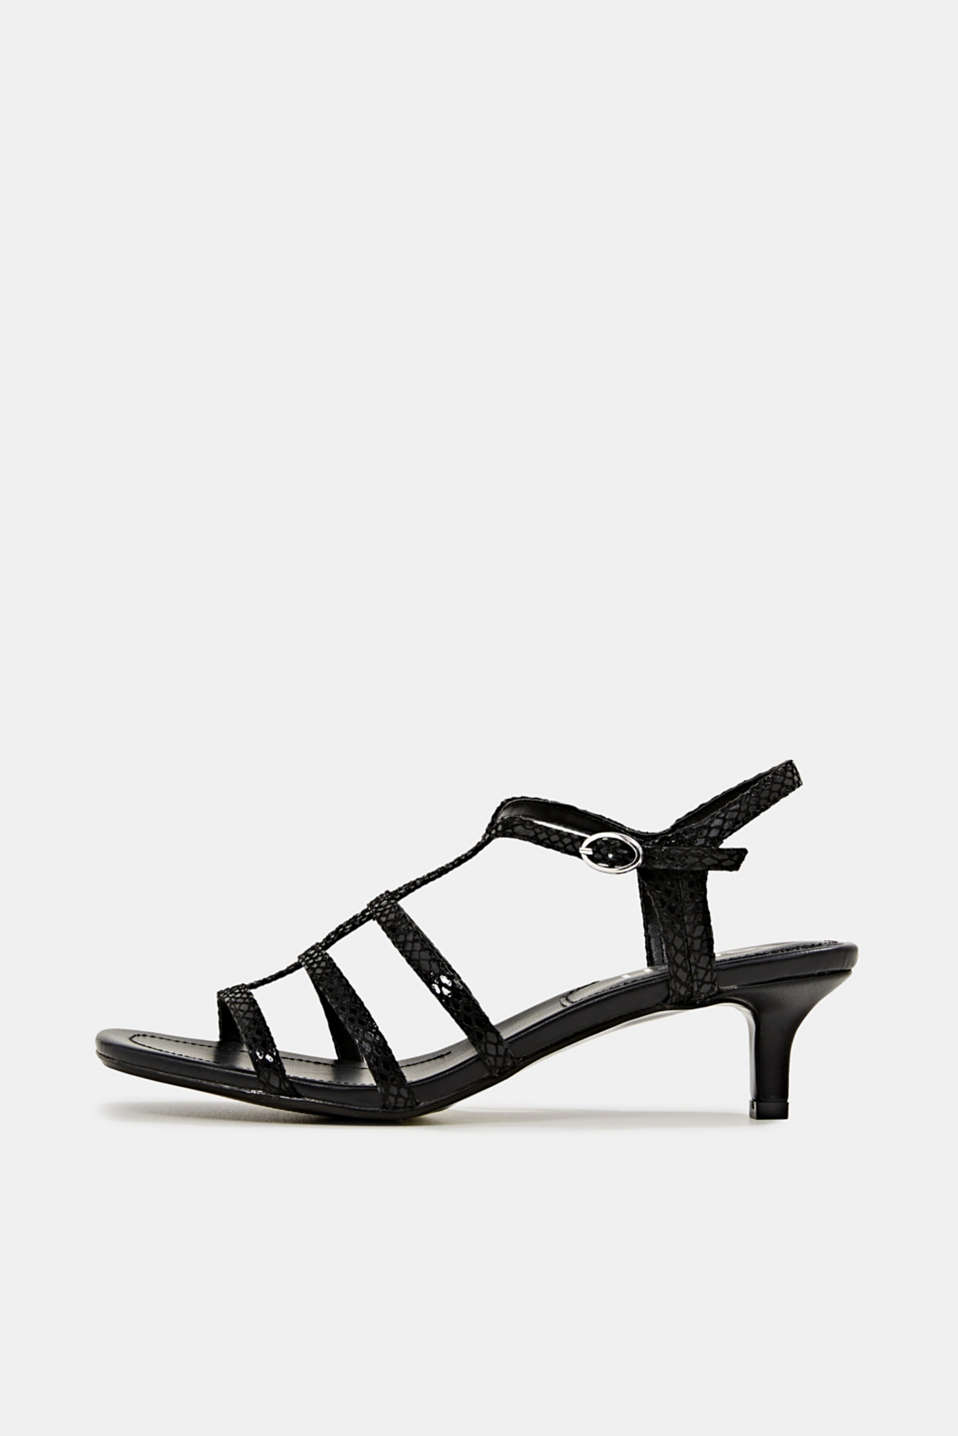 Esprit - Shiny sandals in faux crocodile skin leather